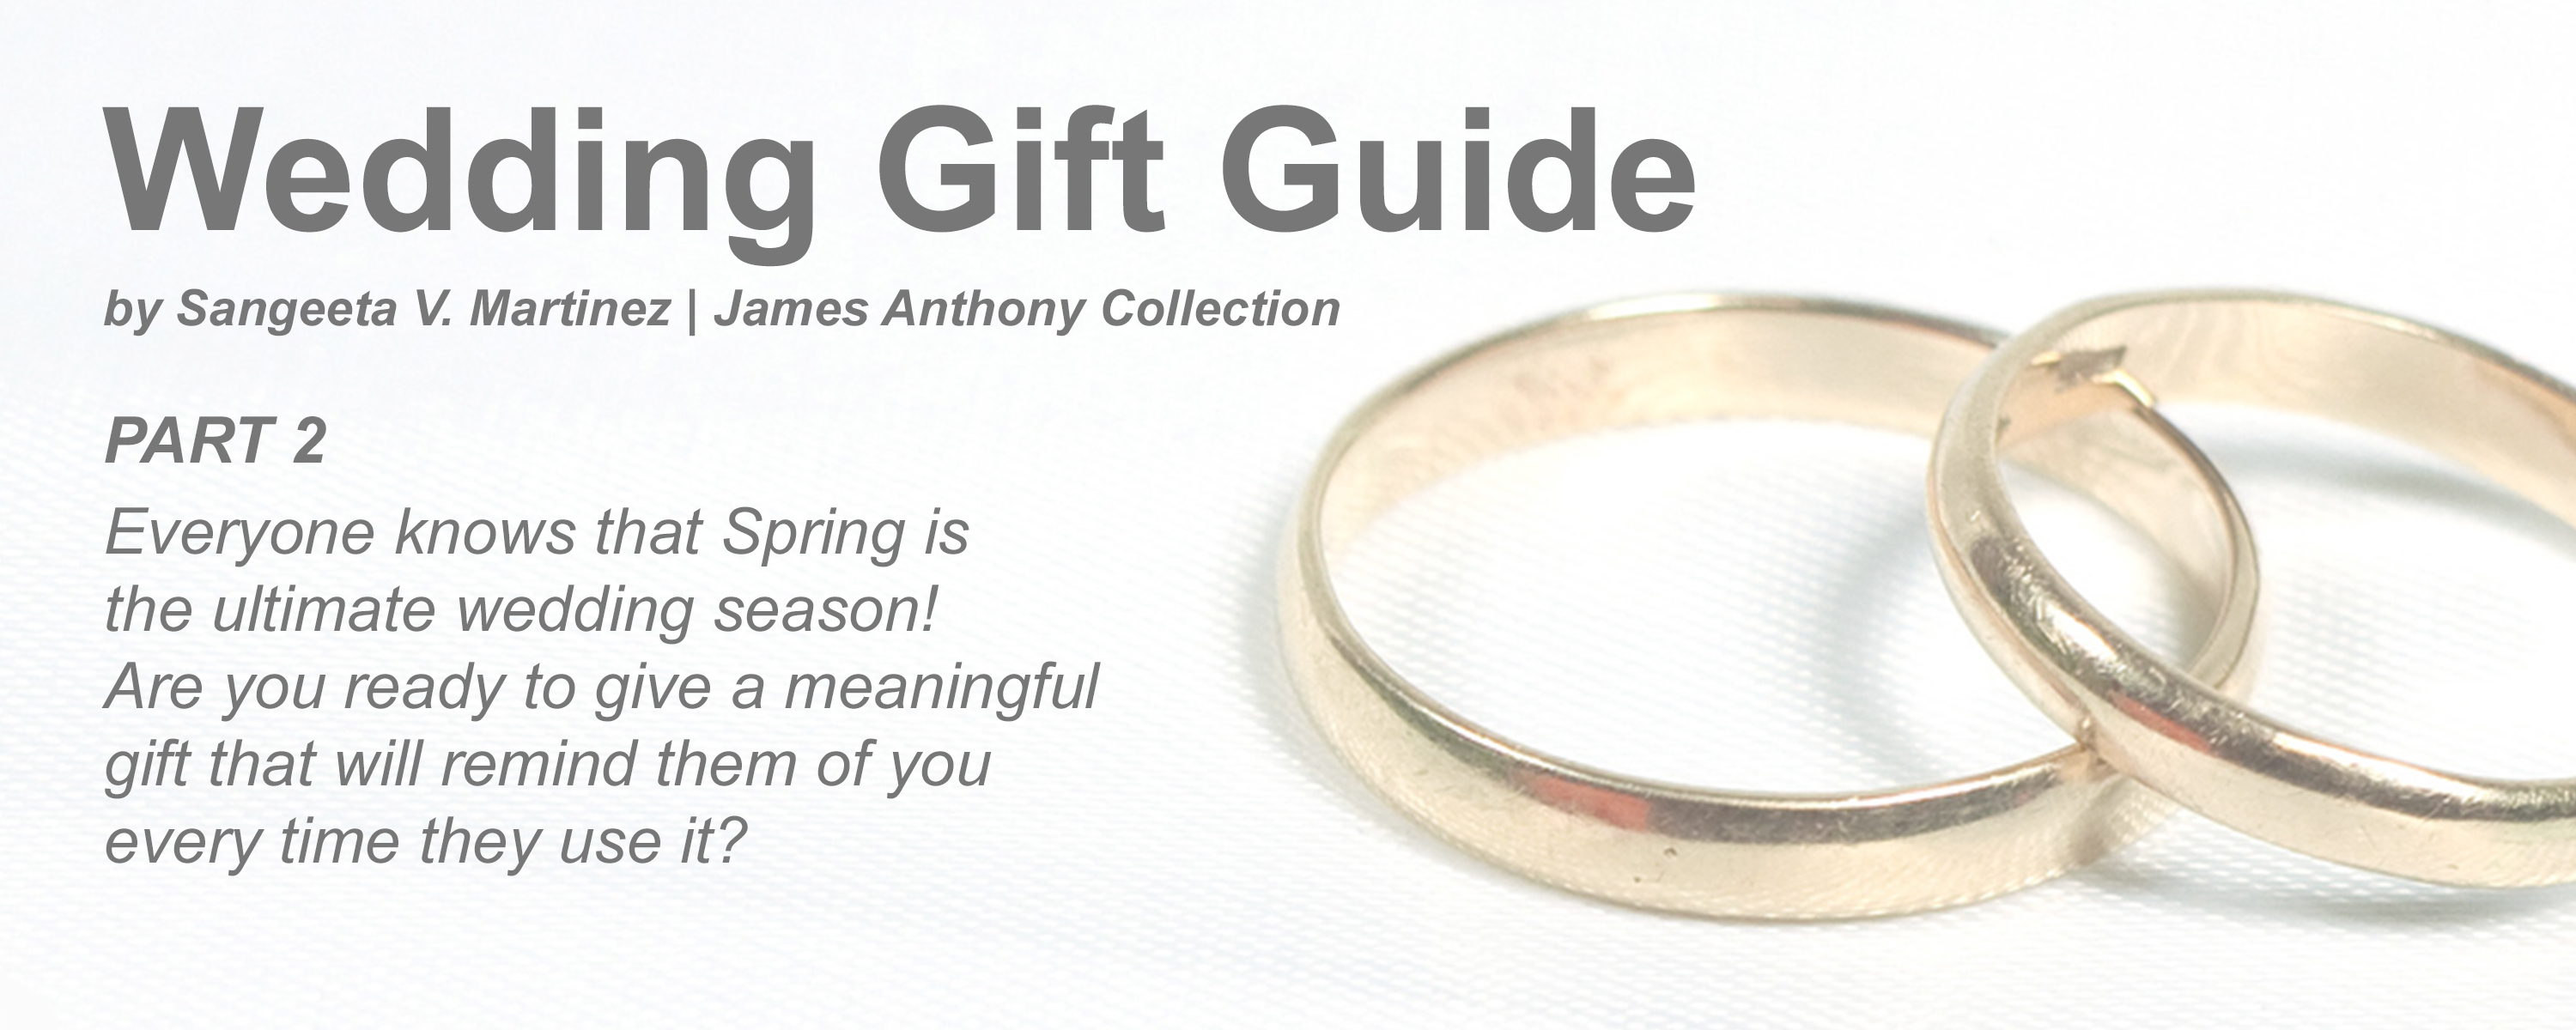 Wedding Gift Guide Part 2 : For the Groomsmen | James Anthony Collection